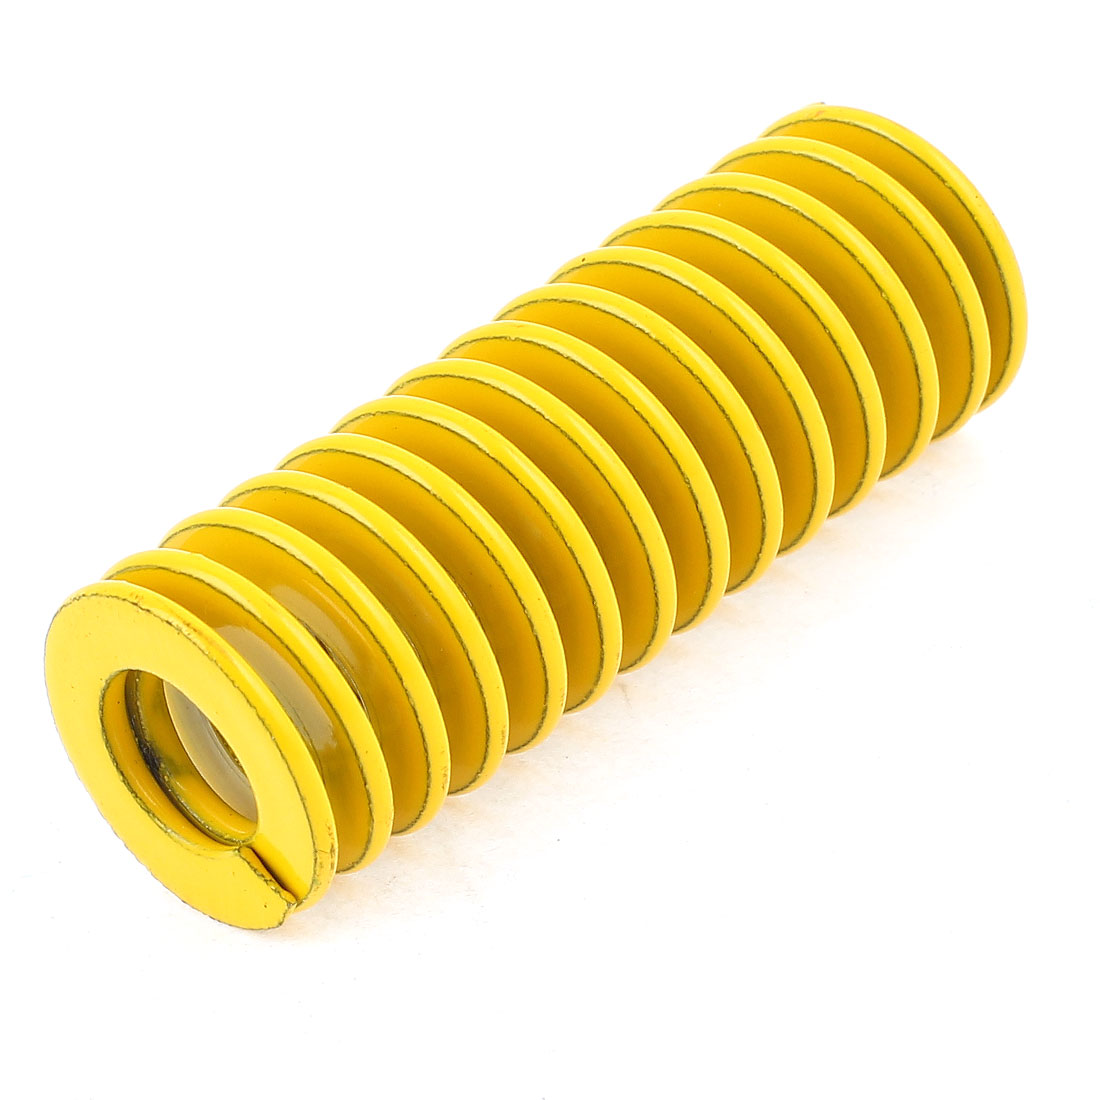 Yellow Alloy Steel Light Load Press Flat Coil Compression Die Spring 18mm x 9mm x 50mm